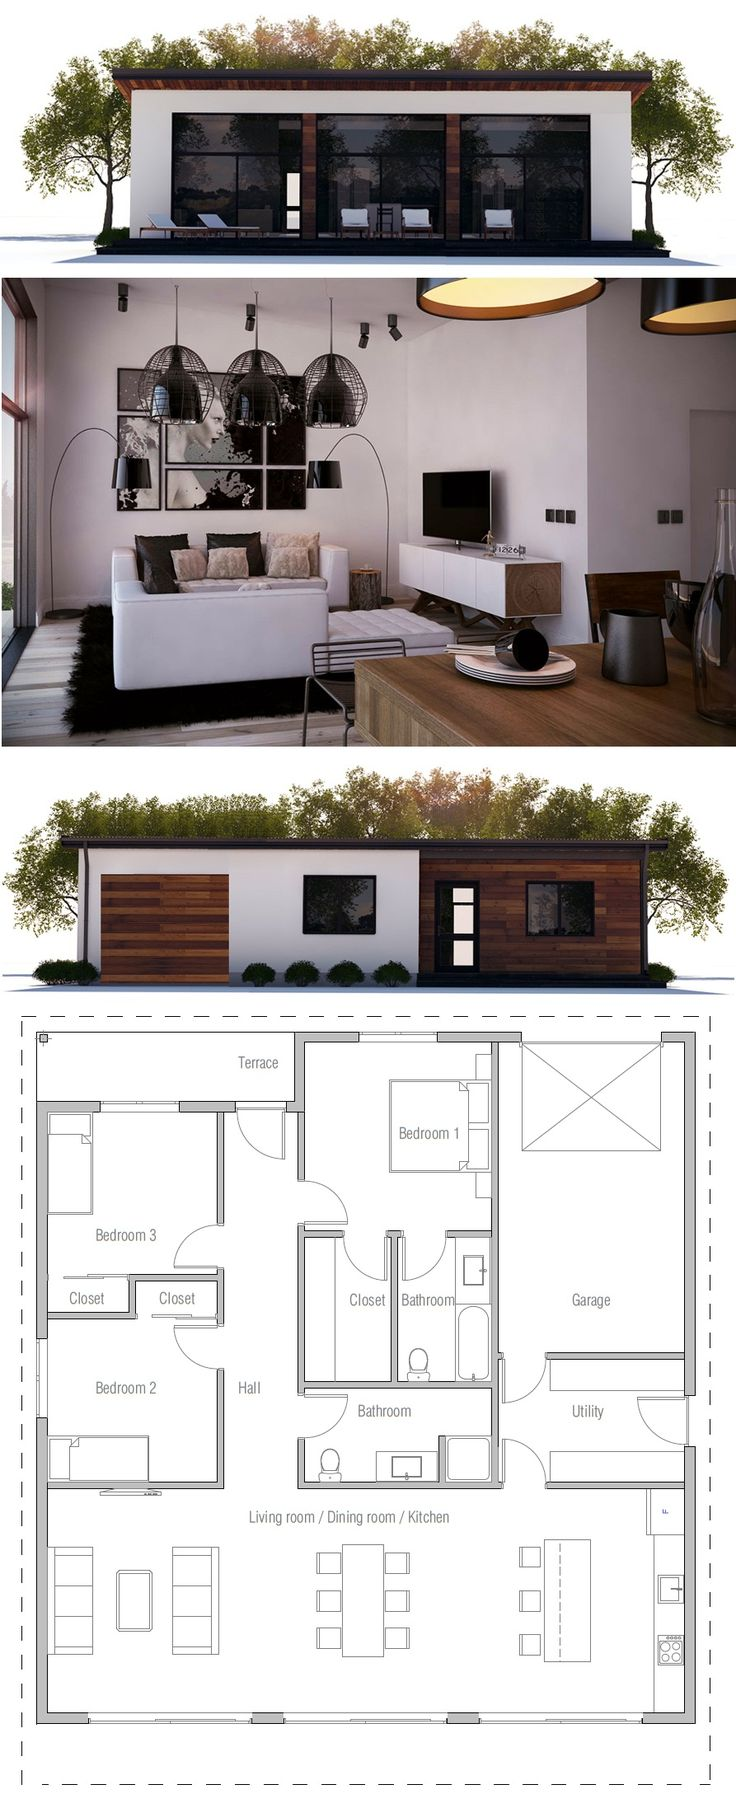 25 best ideas about small house plans on pinterest small home plans small house floor plans and tiny house plans - Small House Designs